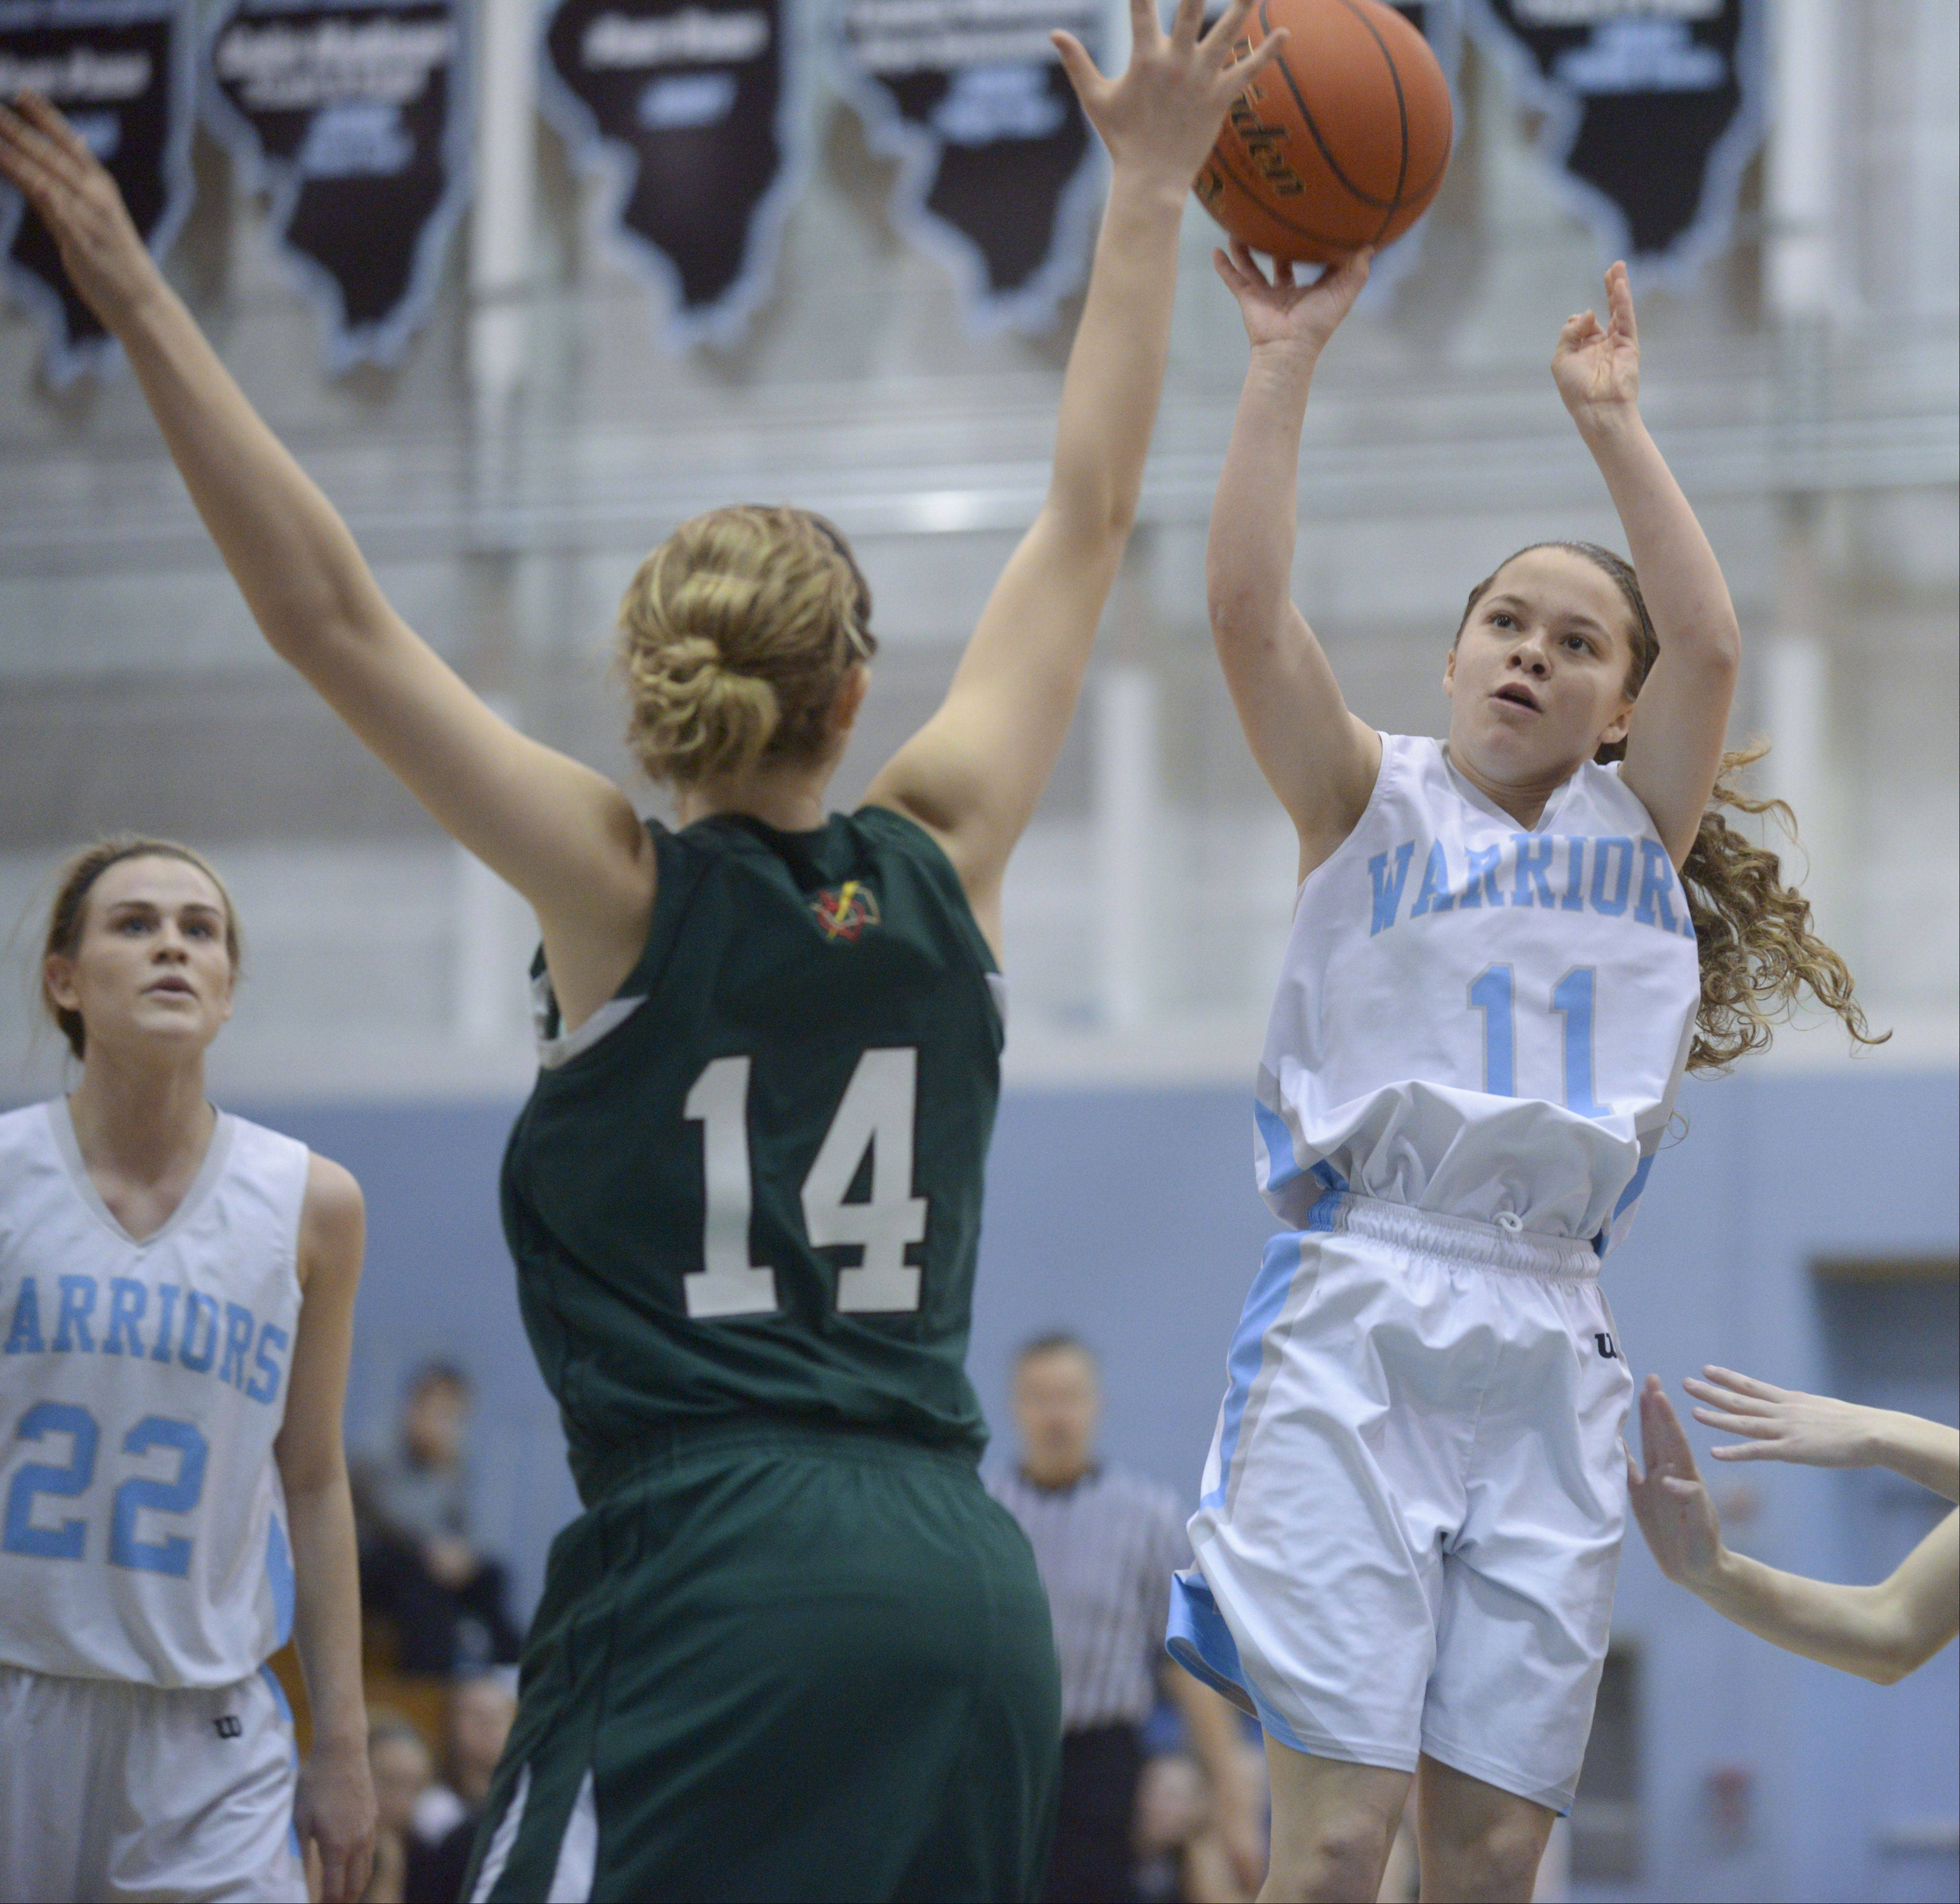 Willowbrook's Danielle Velasquez takes a shot over Providence's Taylor Juricek during the McDonald's girls basketball shootout at Willowbrook High School.